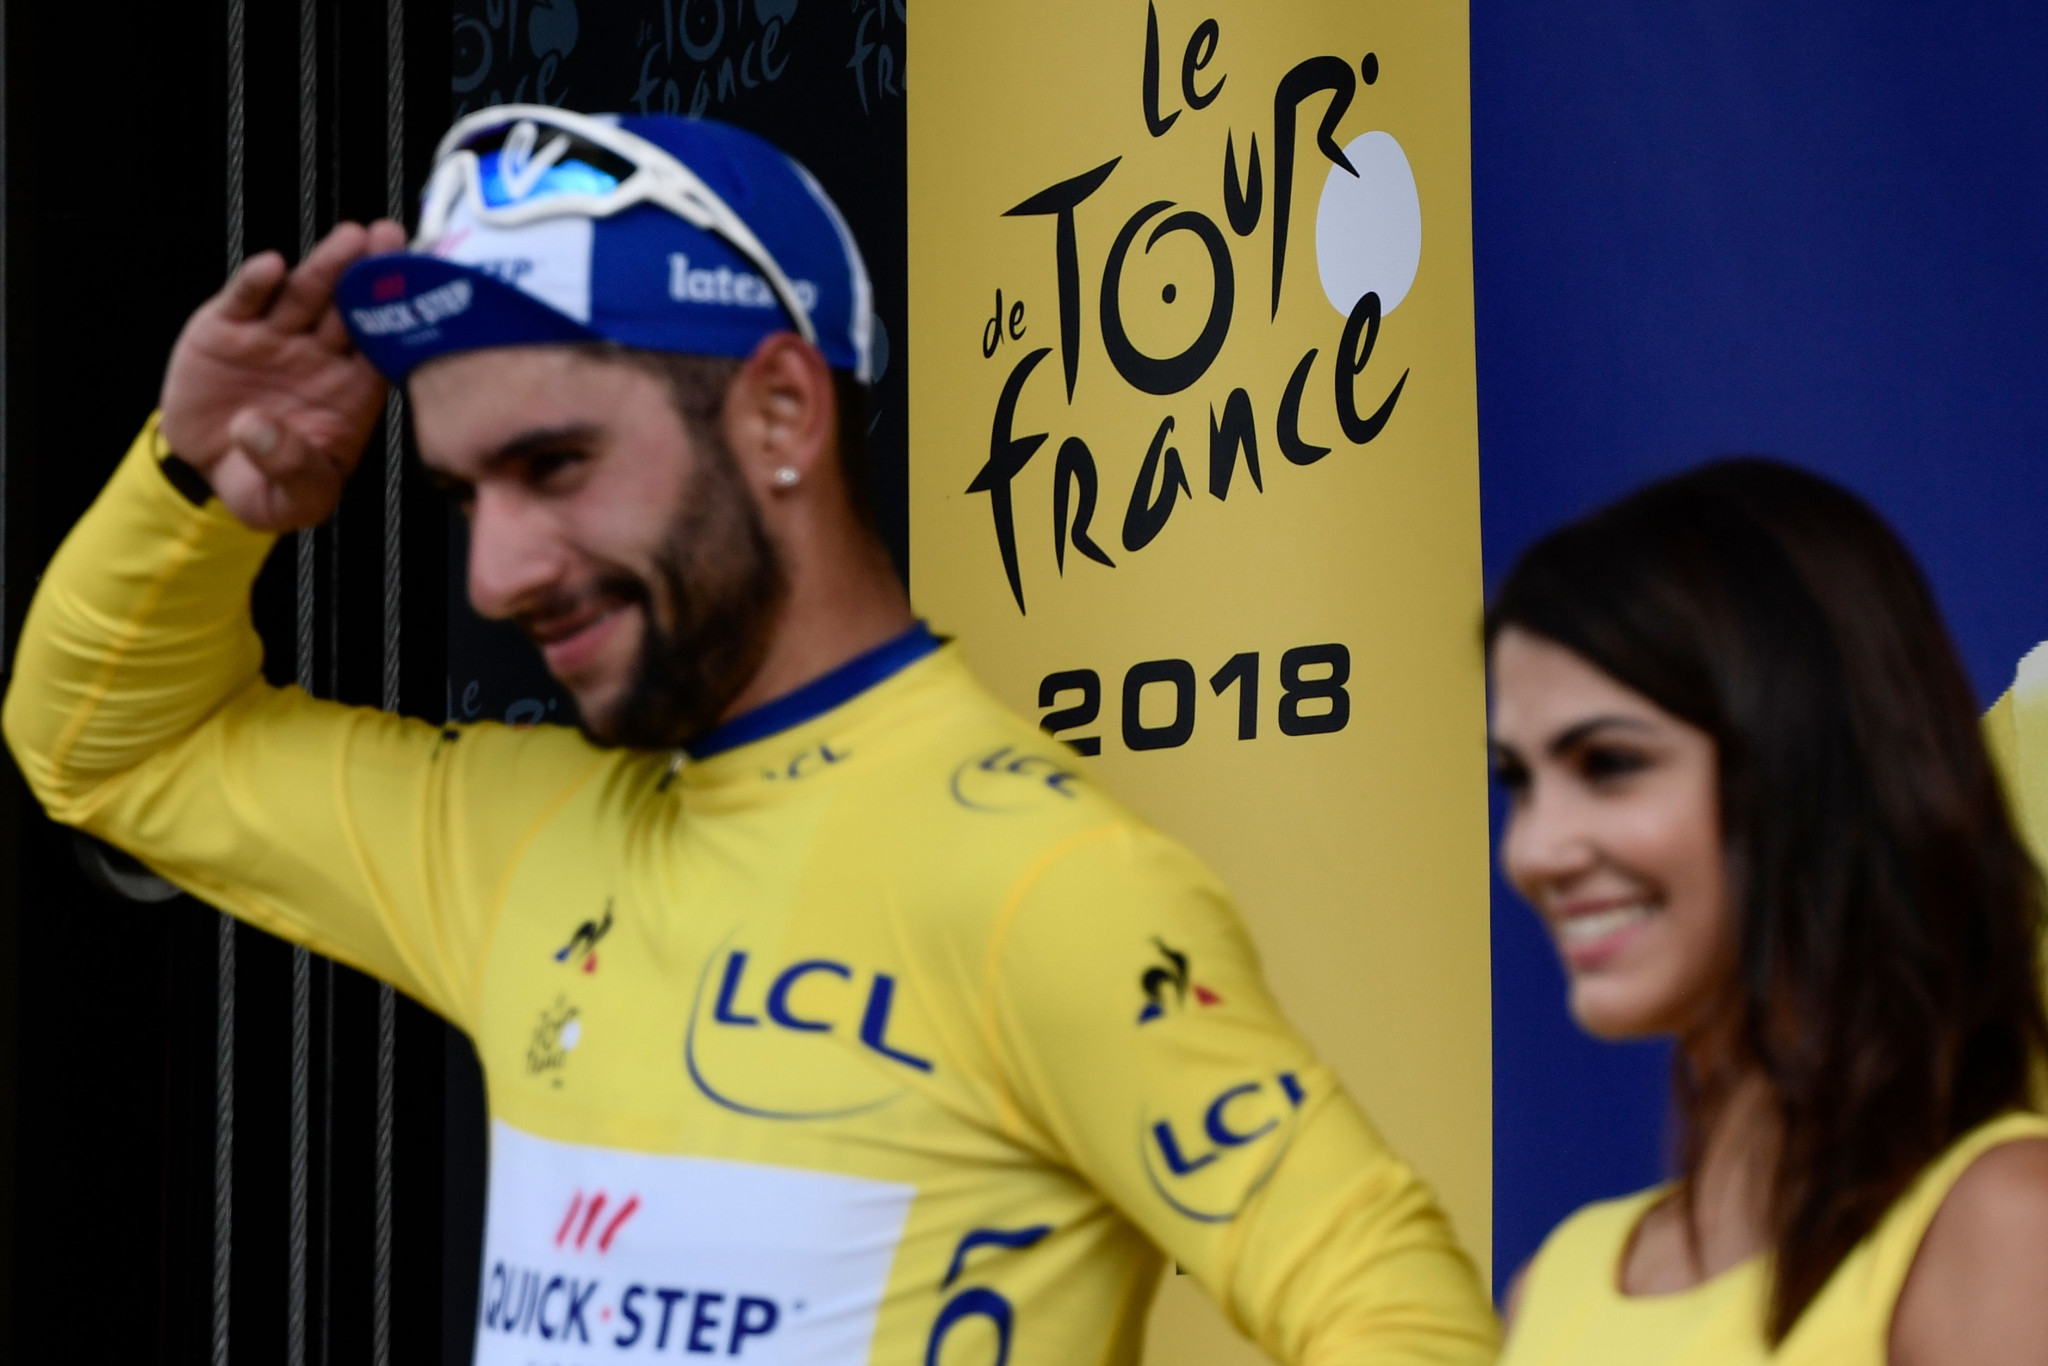 Gaviria takes Tour de France yellow jersey on debut as favourites suffer in dramatic final kilometres